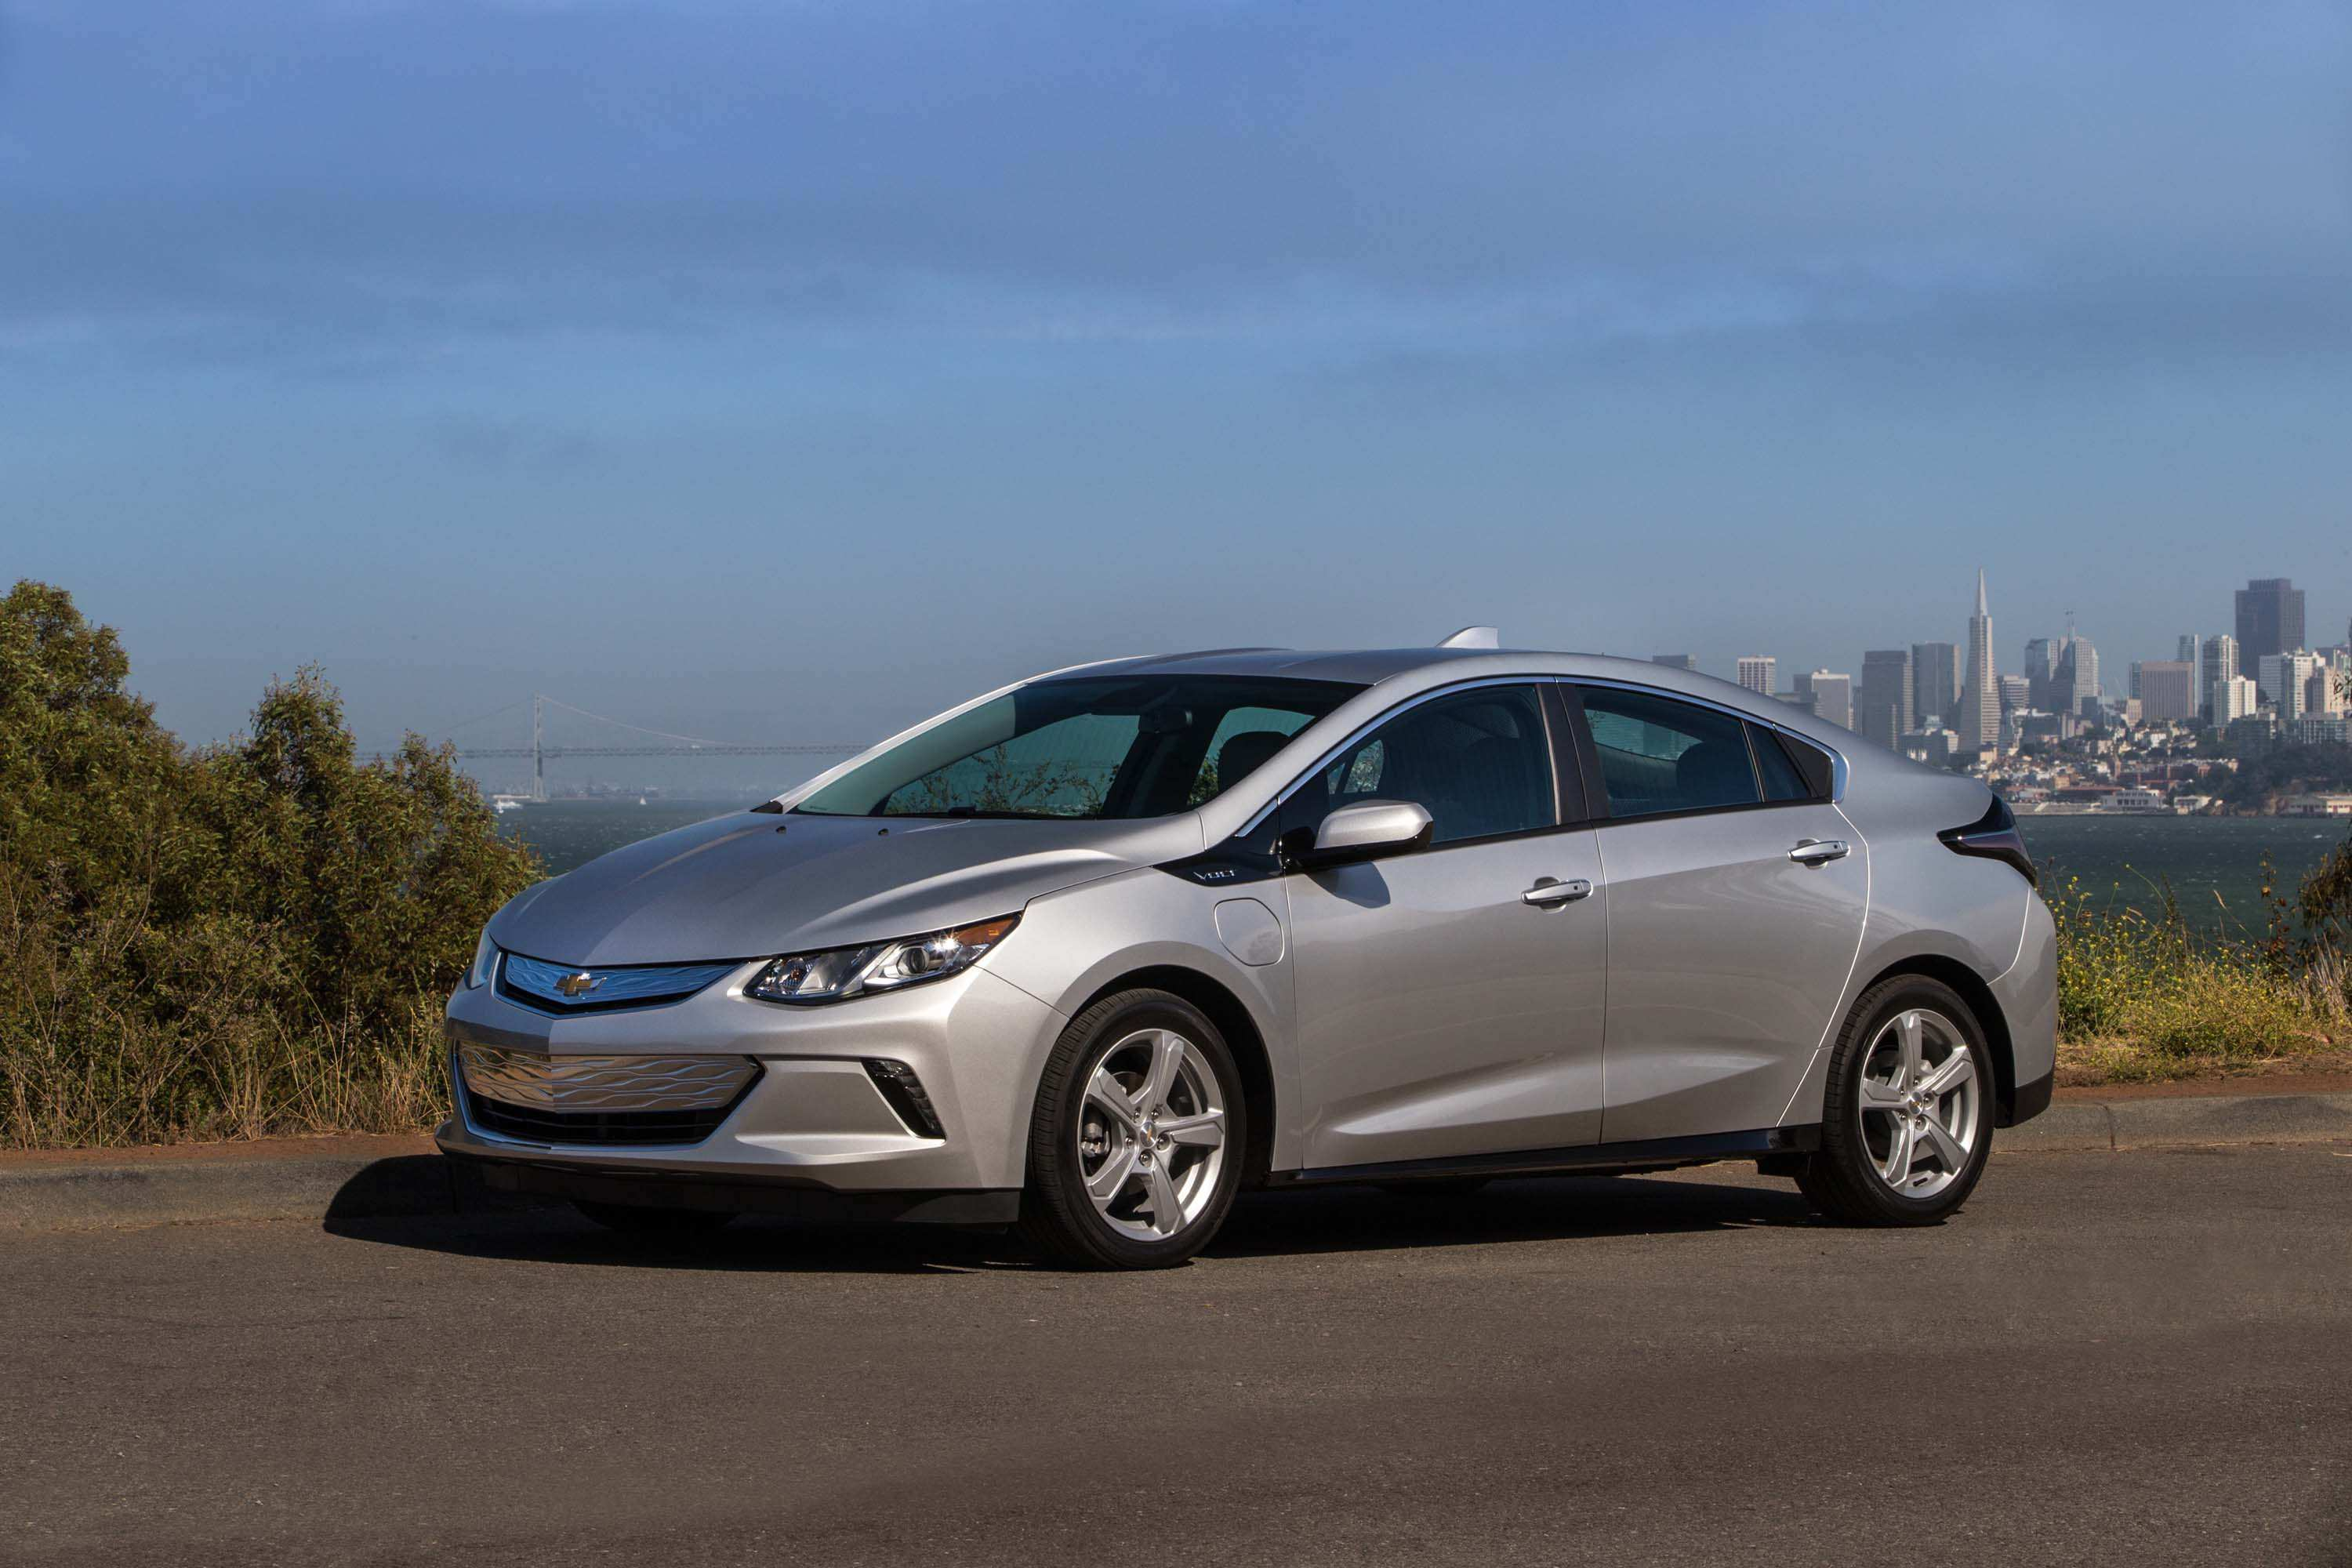 68 All New 2019 Chevy Bolt Prices